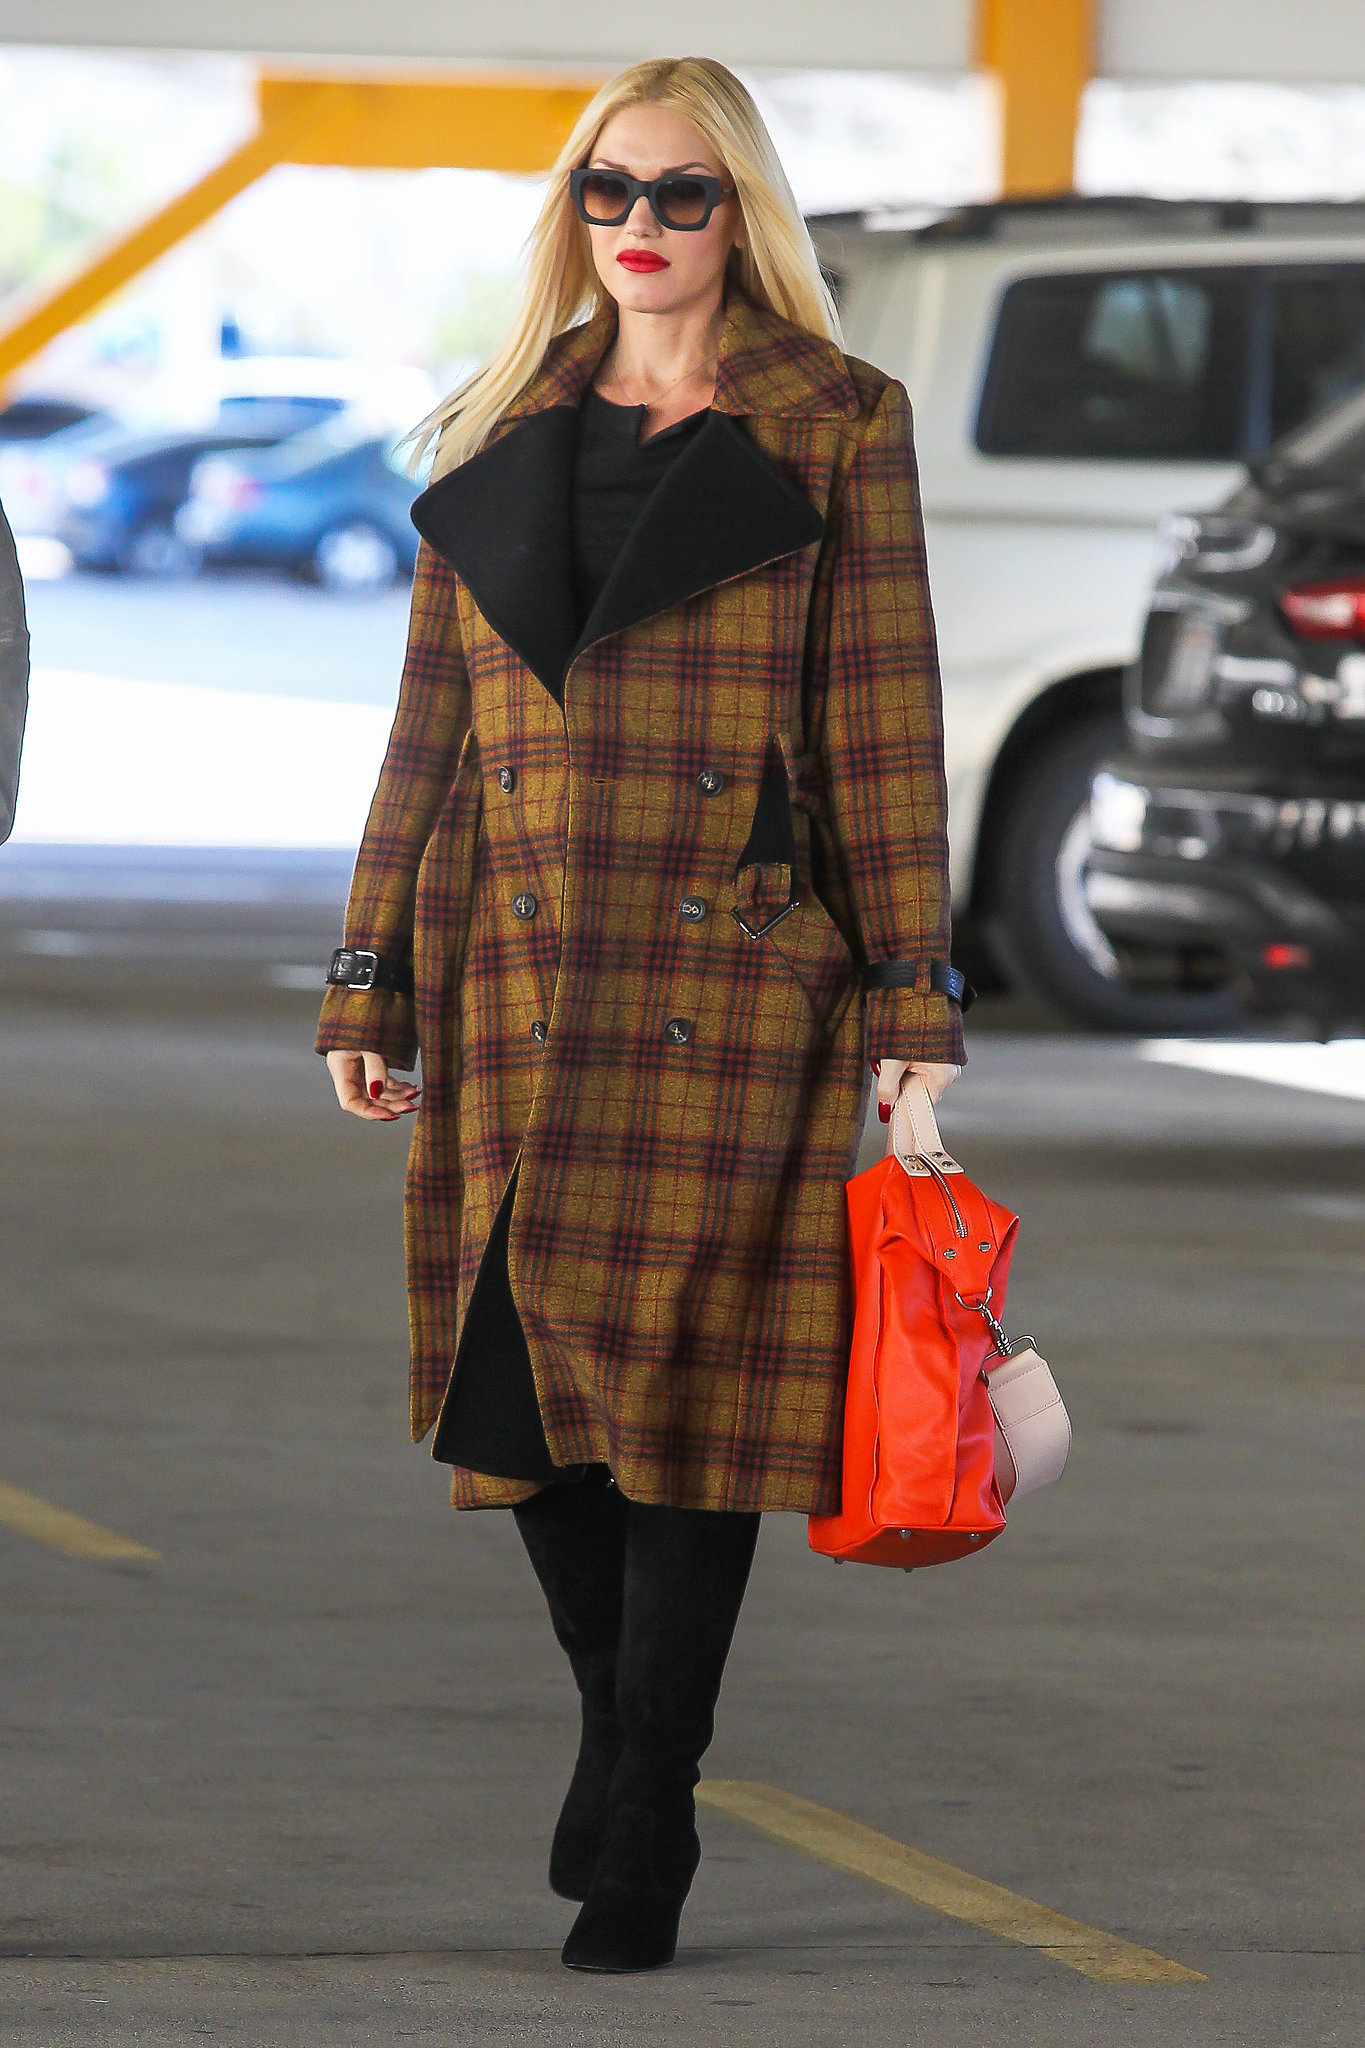 Her coterie of coats make it obvious: Gwen loves plaid! For a look that was all business, she covered up with a double-breasted L.A.M.B. number in autumnal shades.